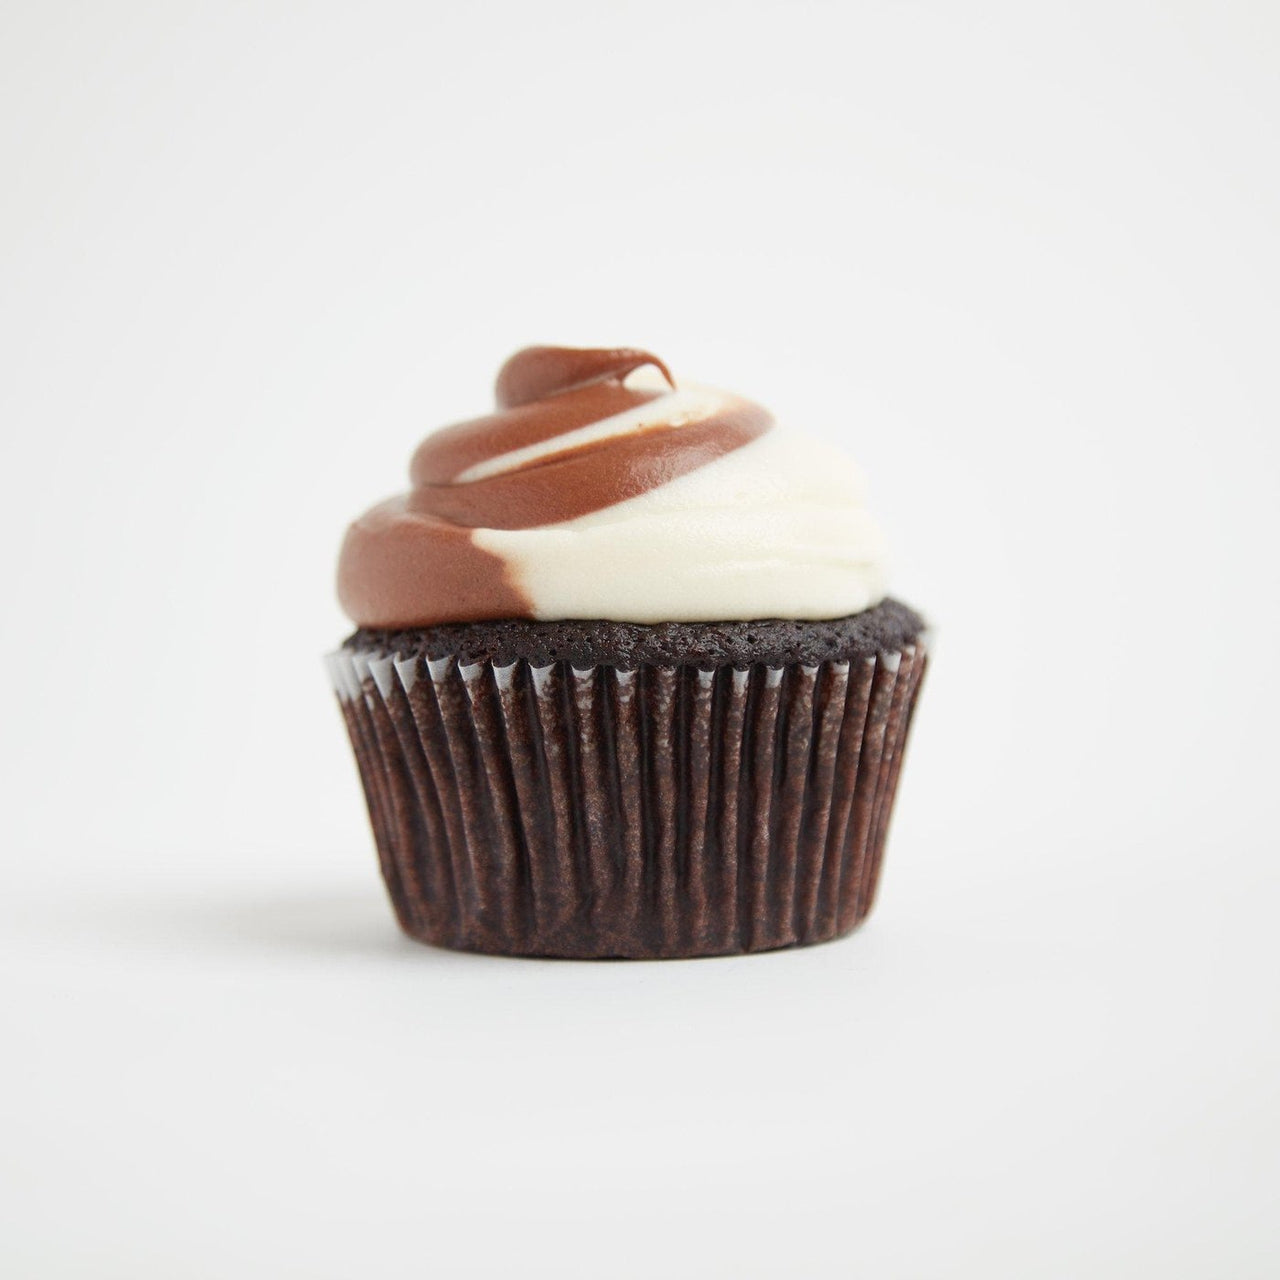 Chocolate Guinness Cupcakes by Crumbs & Doilies